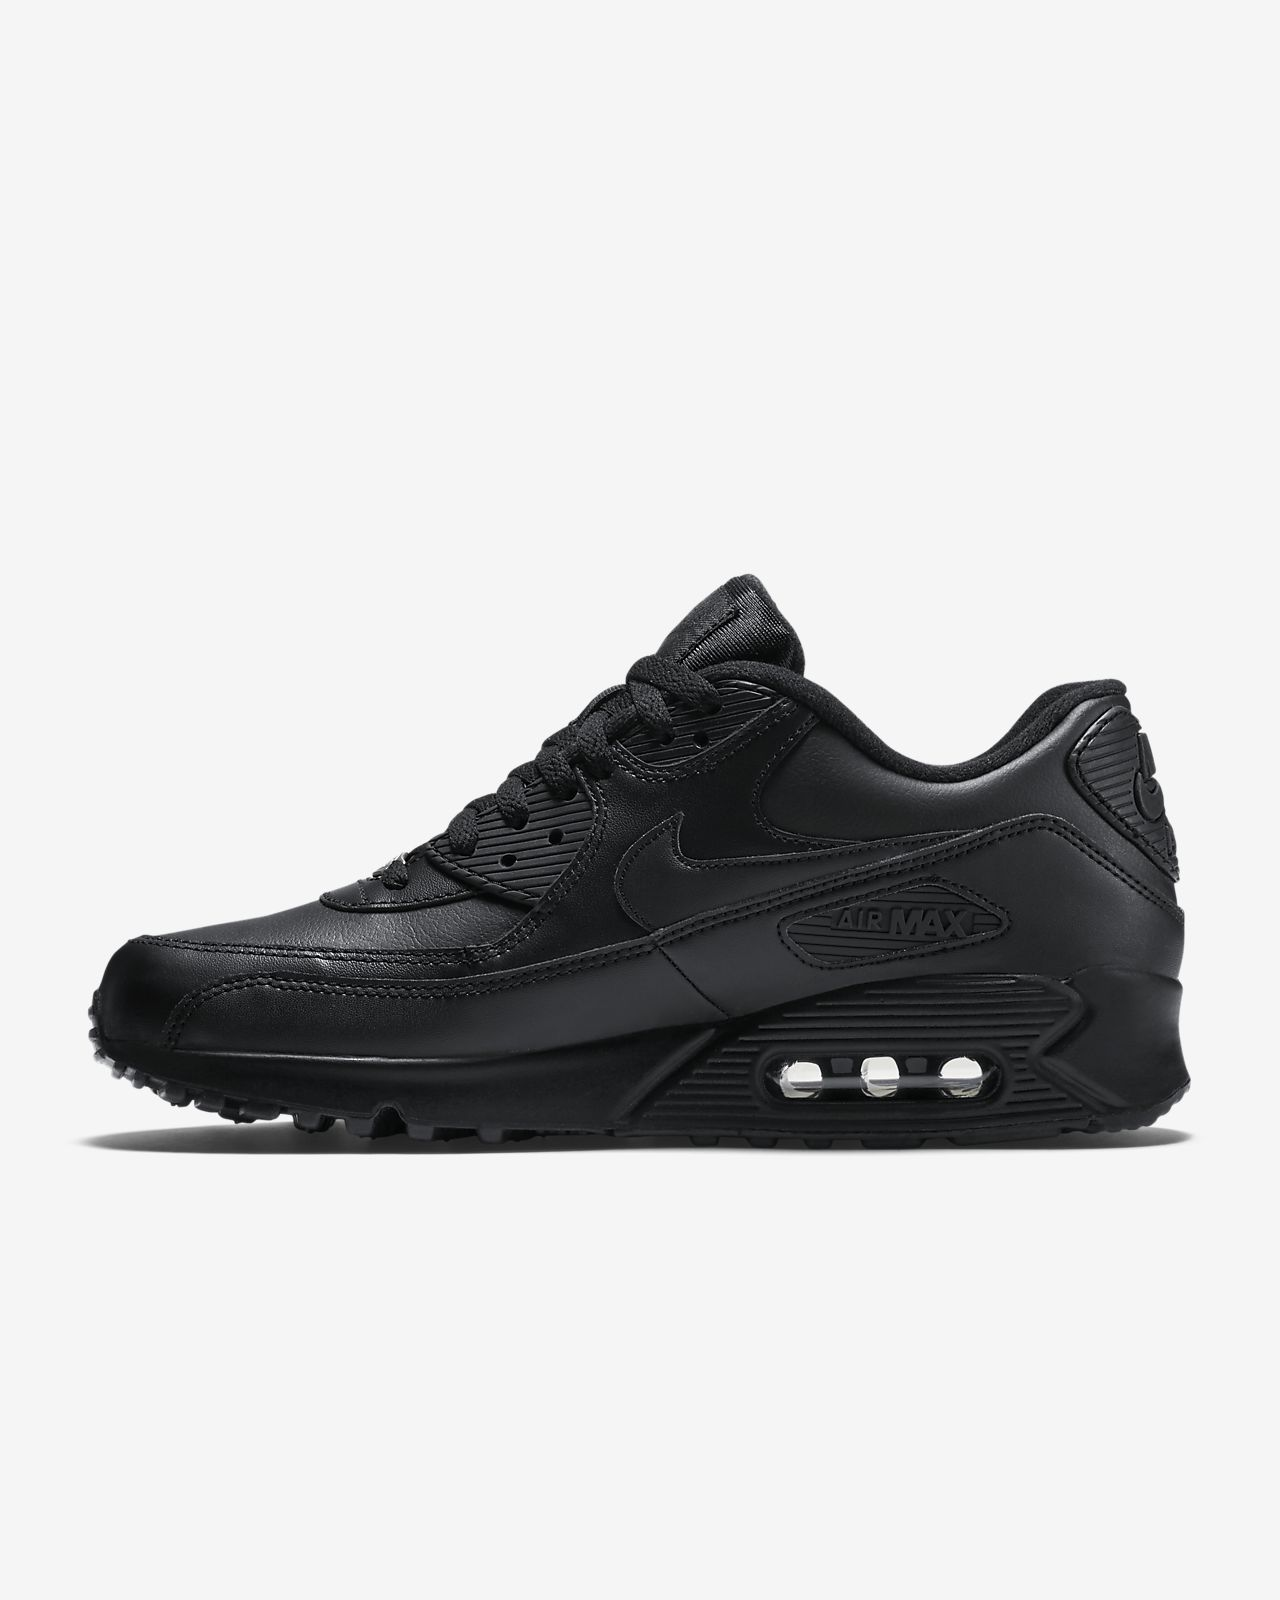 85282256a987 Nike Air Max 90 Leather Men s Shoe. Nike.com GB